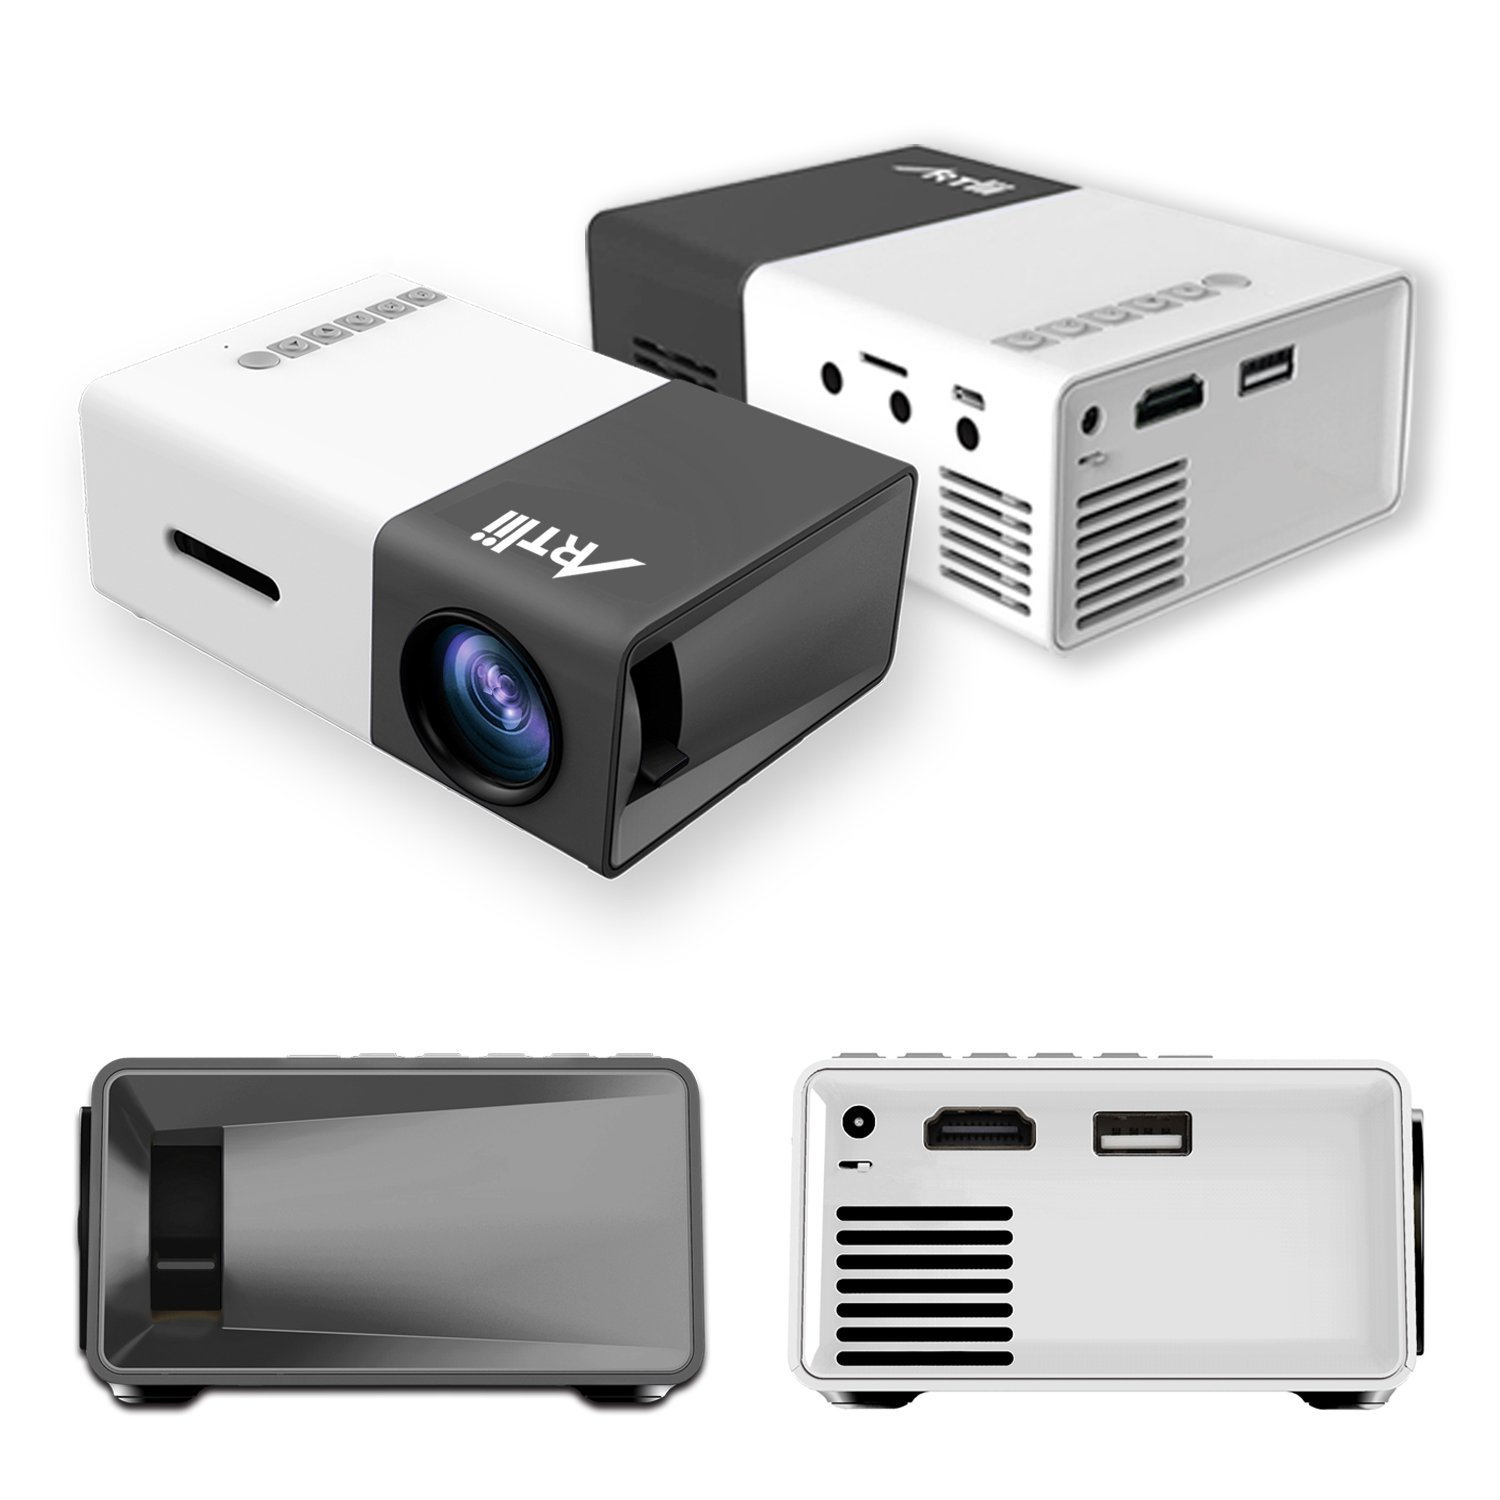 Pico Projector, Artlii Movie iPhone Mini Pocket Laptop Smartphone Projector for Home Cinema Video Party - Black&White by ARTlii (Image #8)